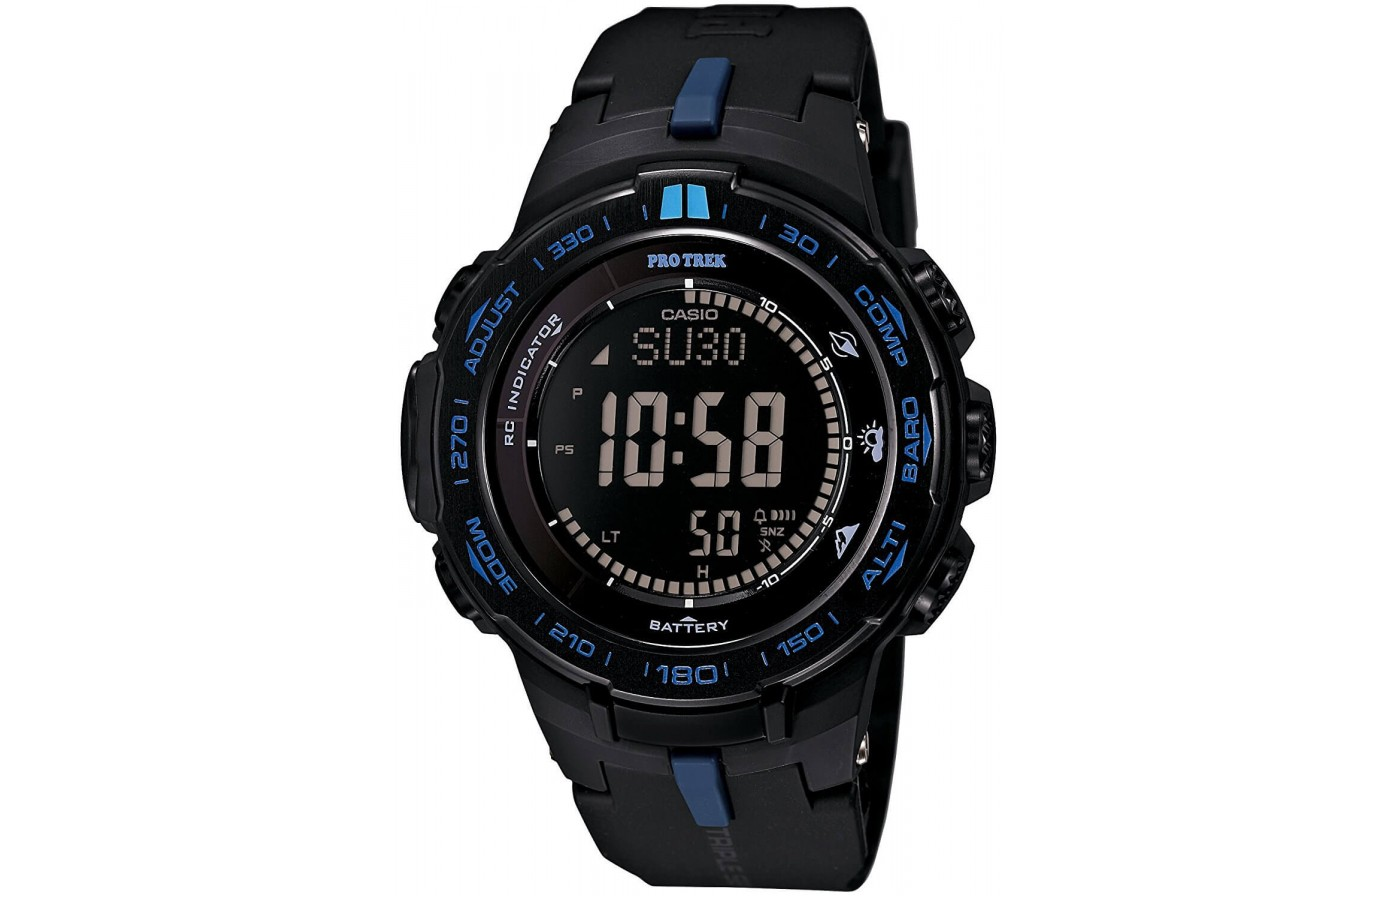 This watch is designed for the extreme outdoors person.